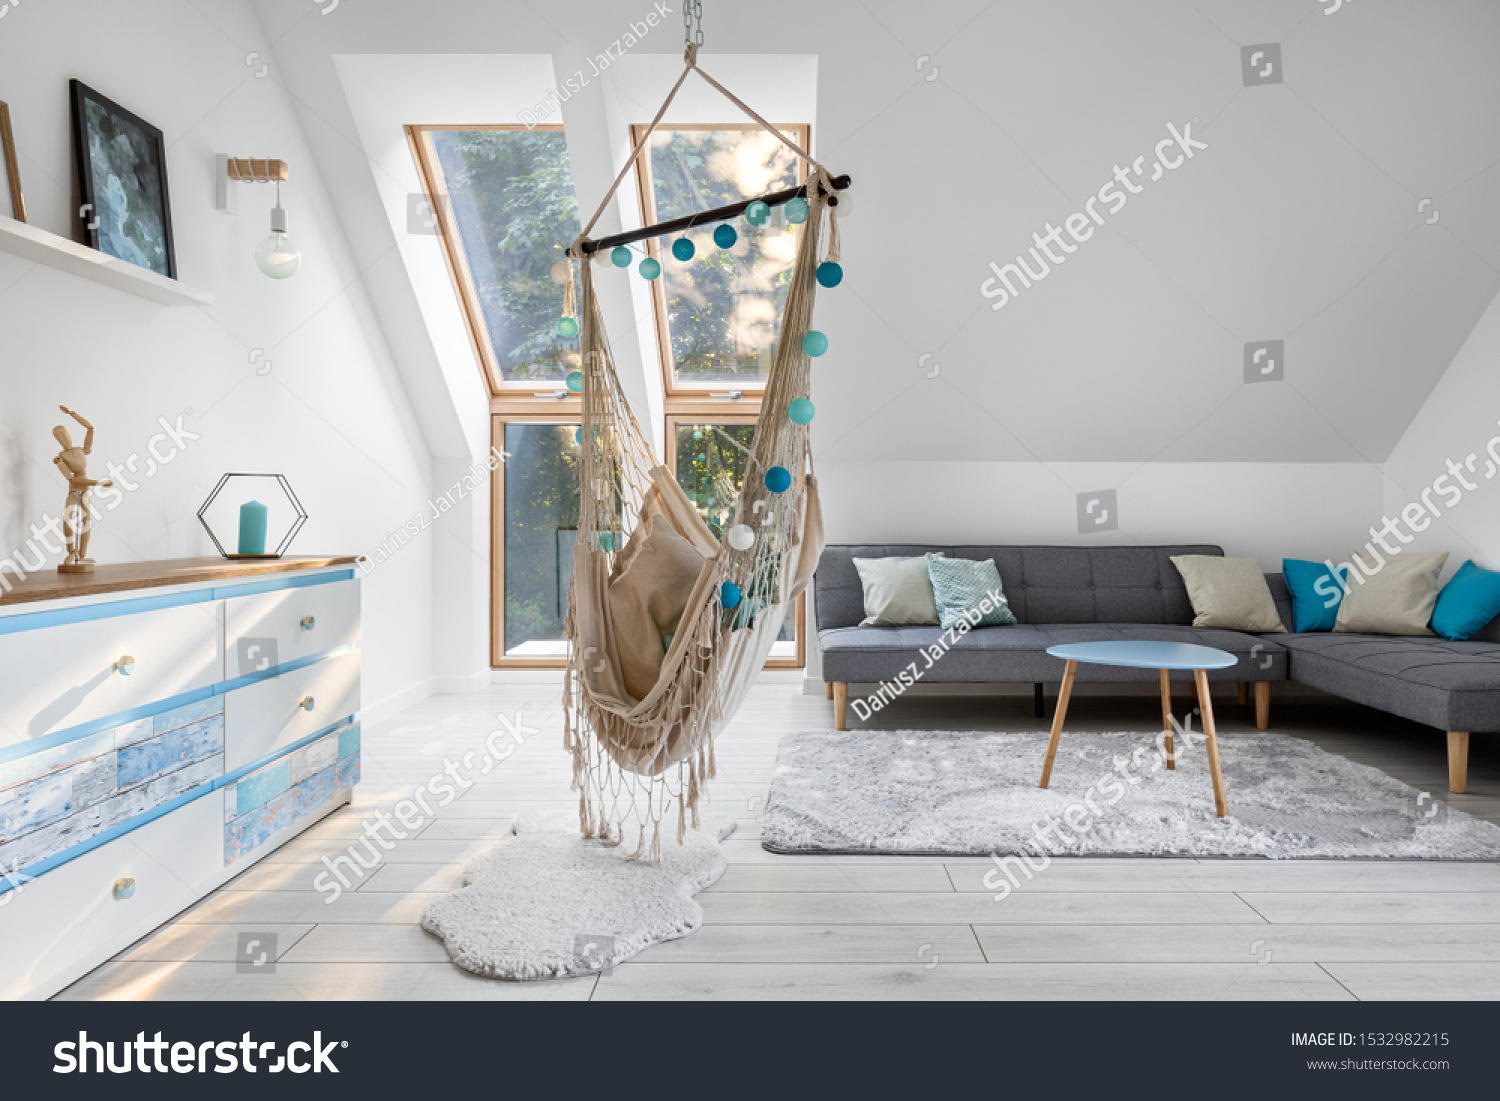 Attic Room White Blue Hammock Seat Stock Photo Edit Now 1532982215